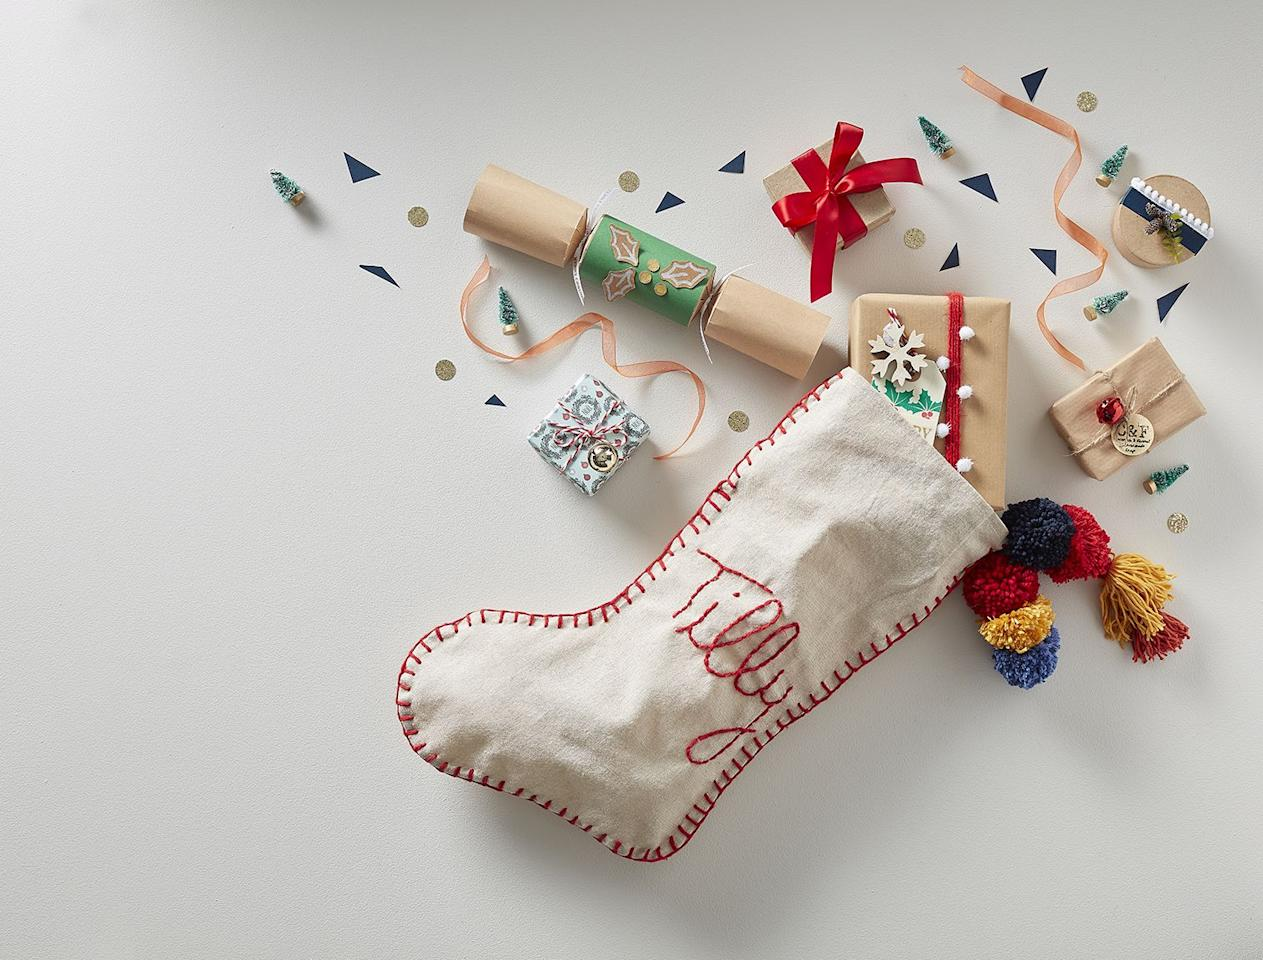 "<p>Hobbycraft has launched its Christmas collection online — and it's revealed the top emerging craft trends for the festive season.</p><p>Of course, non-recyclable plastic wrap is out and eco-friendly alternatives are in, while a focus on things being personalised or customisable is big news. </p><p>We earn a commission for products purchased through some links in this article.</p><p><a href=""https://www.hobbycraft.co.uk"" target=""_blank"">Hobbycraft</a>'s new <a href=""https://www.prima.co.uk/christmas"" target=""_blank"">Christmas</a> products have just landed online (5th September) and will be in store on 12th September. </p><p>Joel Pickering, Head of Marketing at Hobbycraft says: 'Each year we see an increasing demand for an early launch of Christmas product as our customers are eager to start creating their handmade Christmas designs. </p><p>'Clearly there is an appetite as proven by the sales and blog searches for creative ideas from our experts, and we are pleased to be able to satisfy the demand. </p><p>'There is an entrepreneurial spirit amongst our customers who create to sell and also avid crafters who simply like to get a head start on their personalised preparations.'</p><p>Hobbycraft's Christmas range has a host of lines from just £1, perfect for anyone that likes to create cards, crackers and decoration collections.</p><p>New innovations for Christmas 2019 include the new wooden LED scenes and ceramic decorations. See – and shop –  Hobbycraft's top Christmas trends for a very creative and fun festive season...</p>"